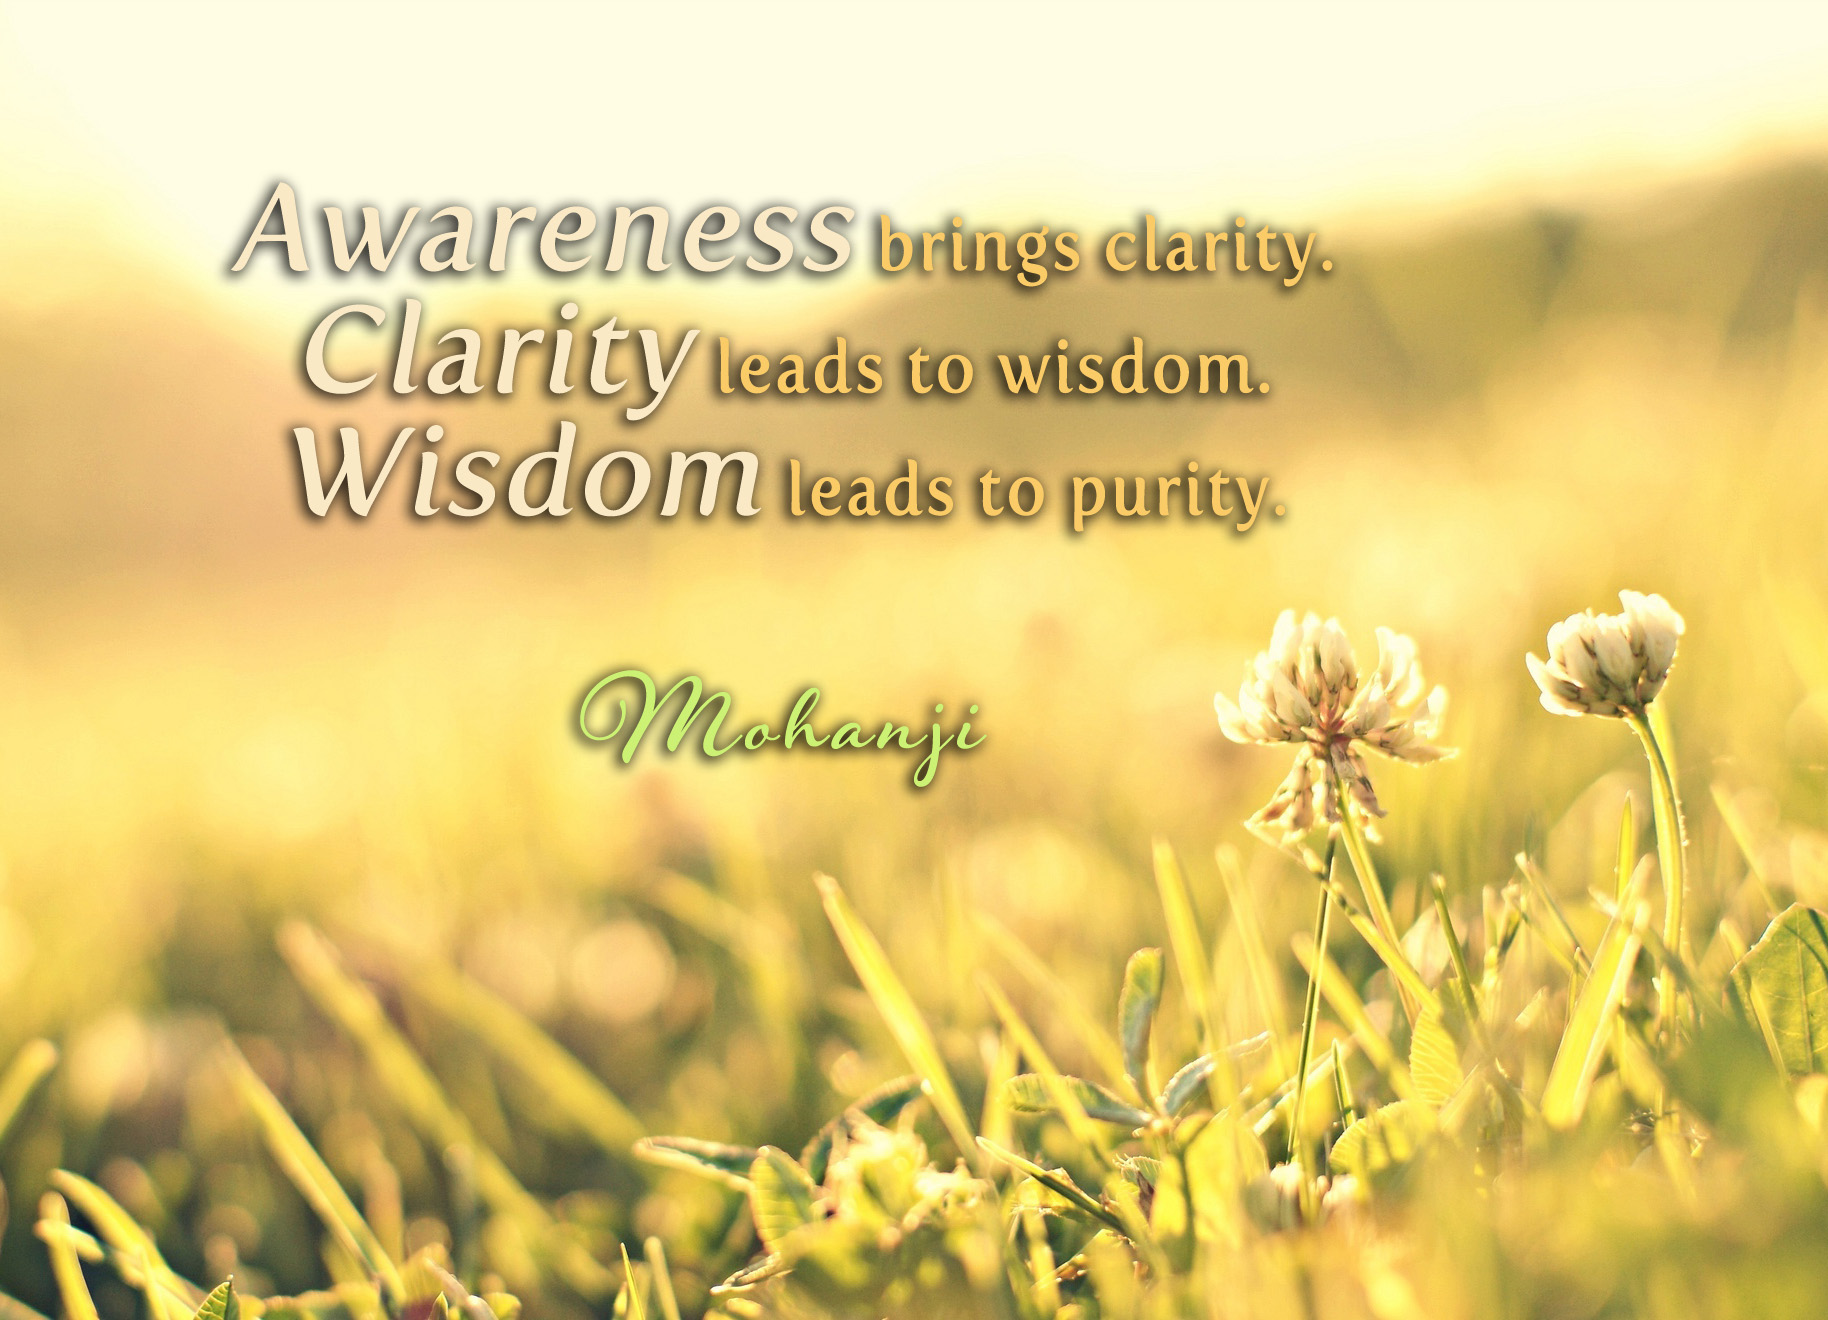 Quotes About Calmness In The Storm Mohanji Quotes Awareness Brings Clarity